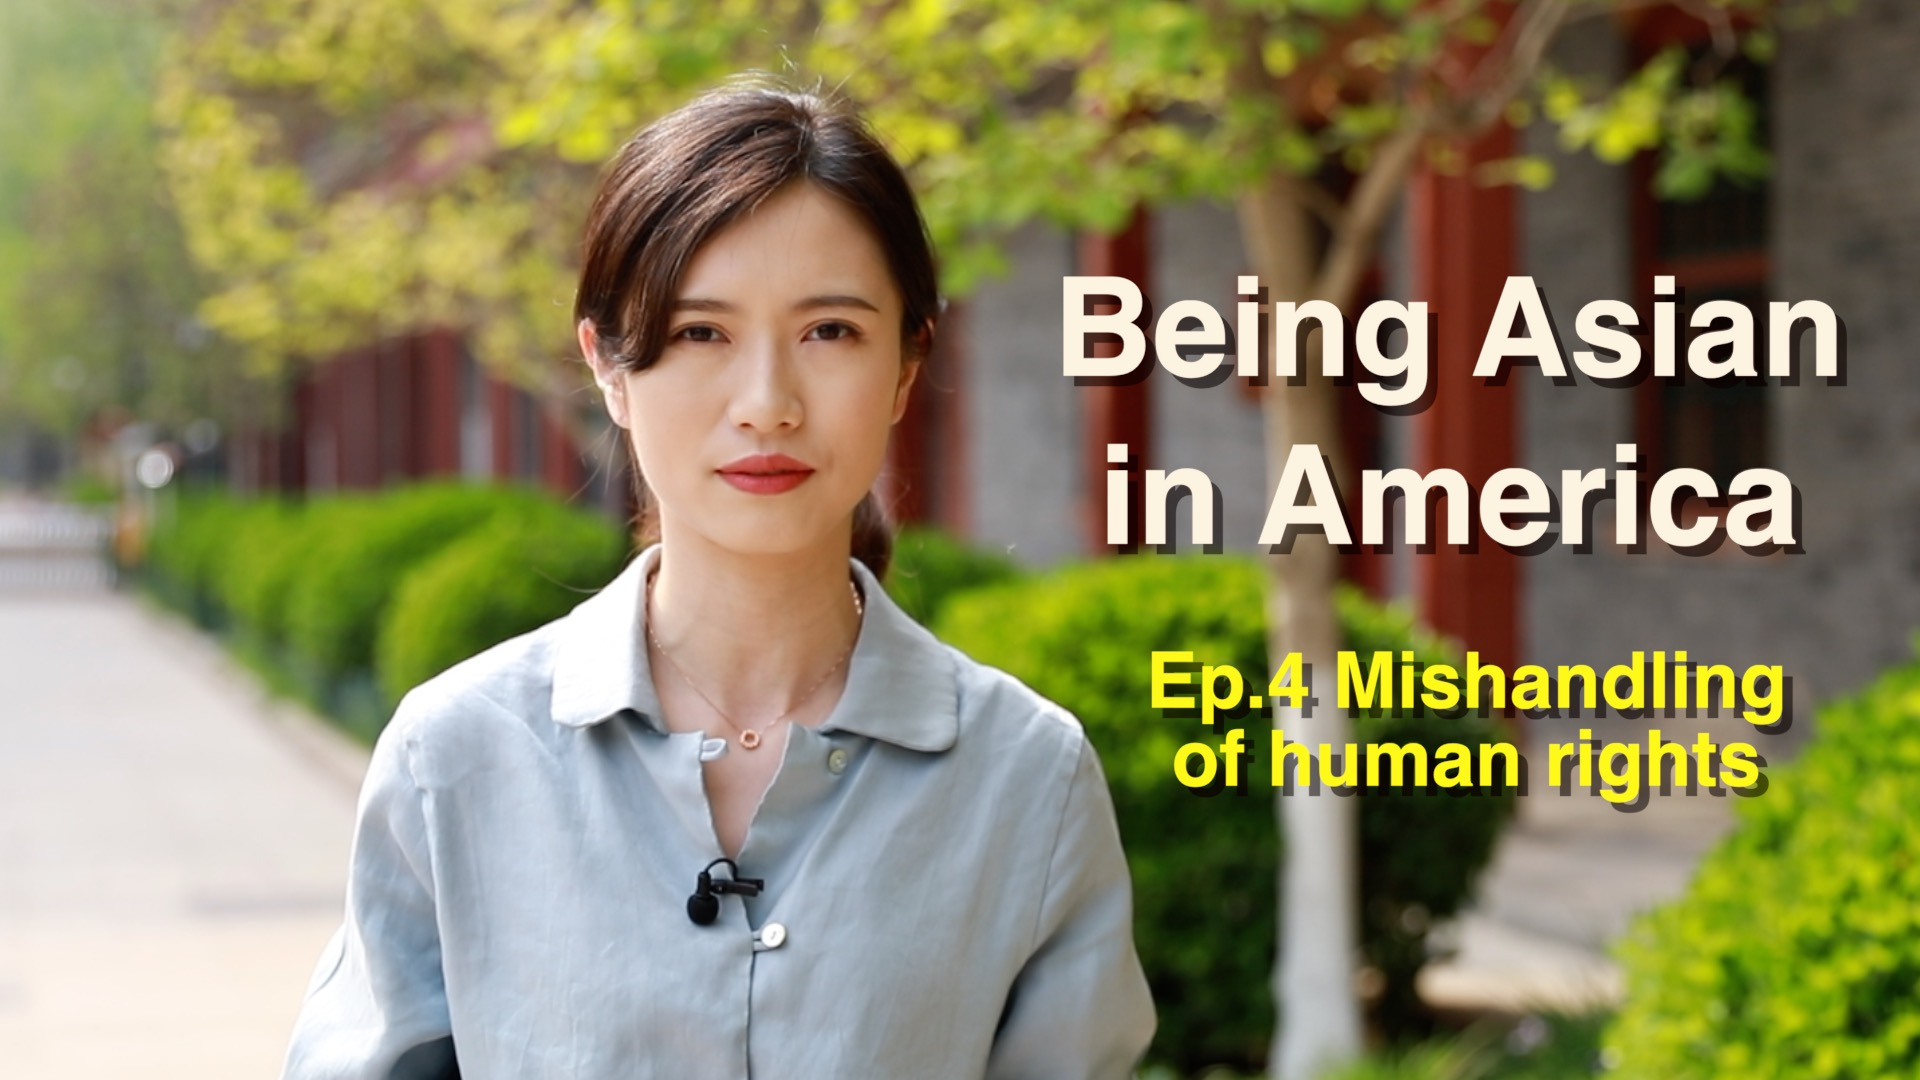 GLOBALink | Being Asian in America Ep. 4: Mishandling of human rights